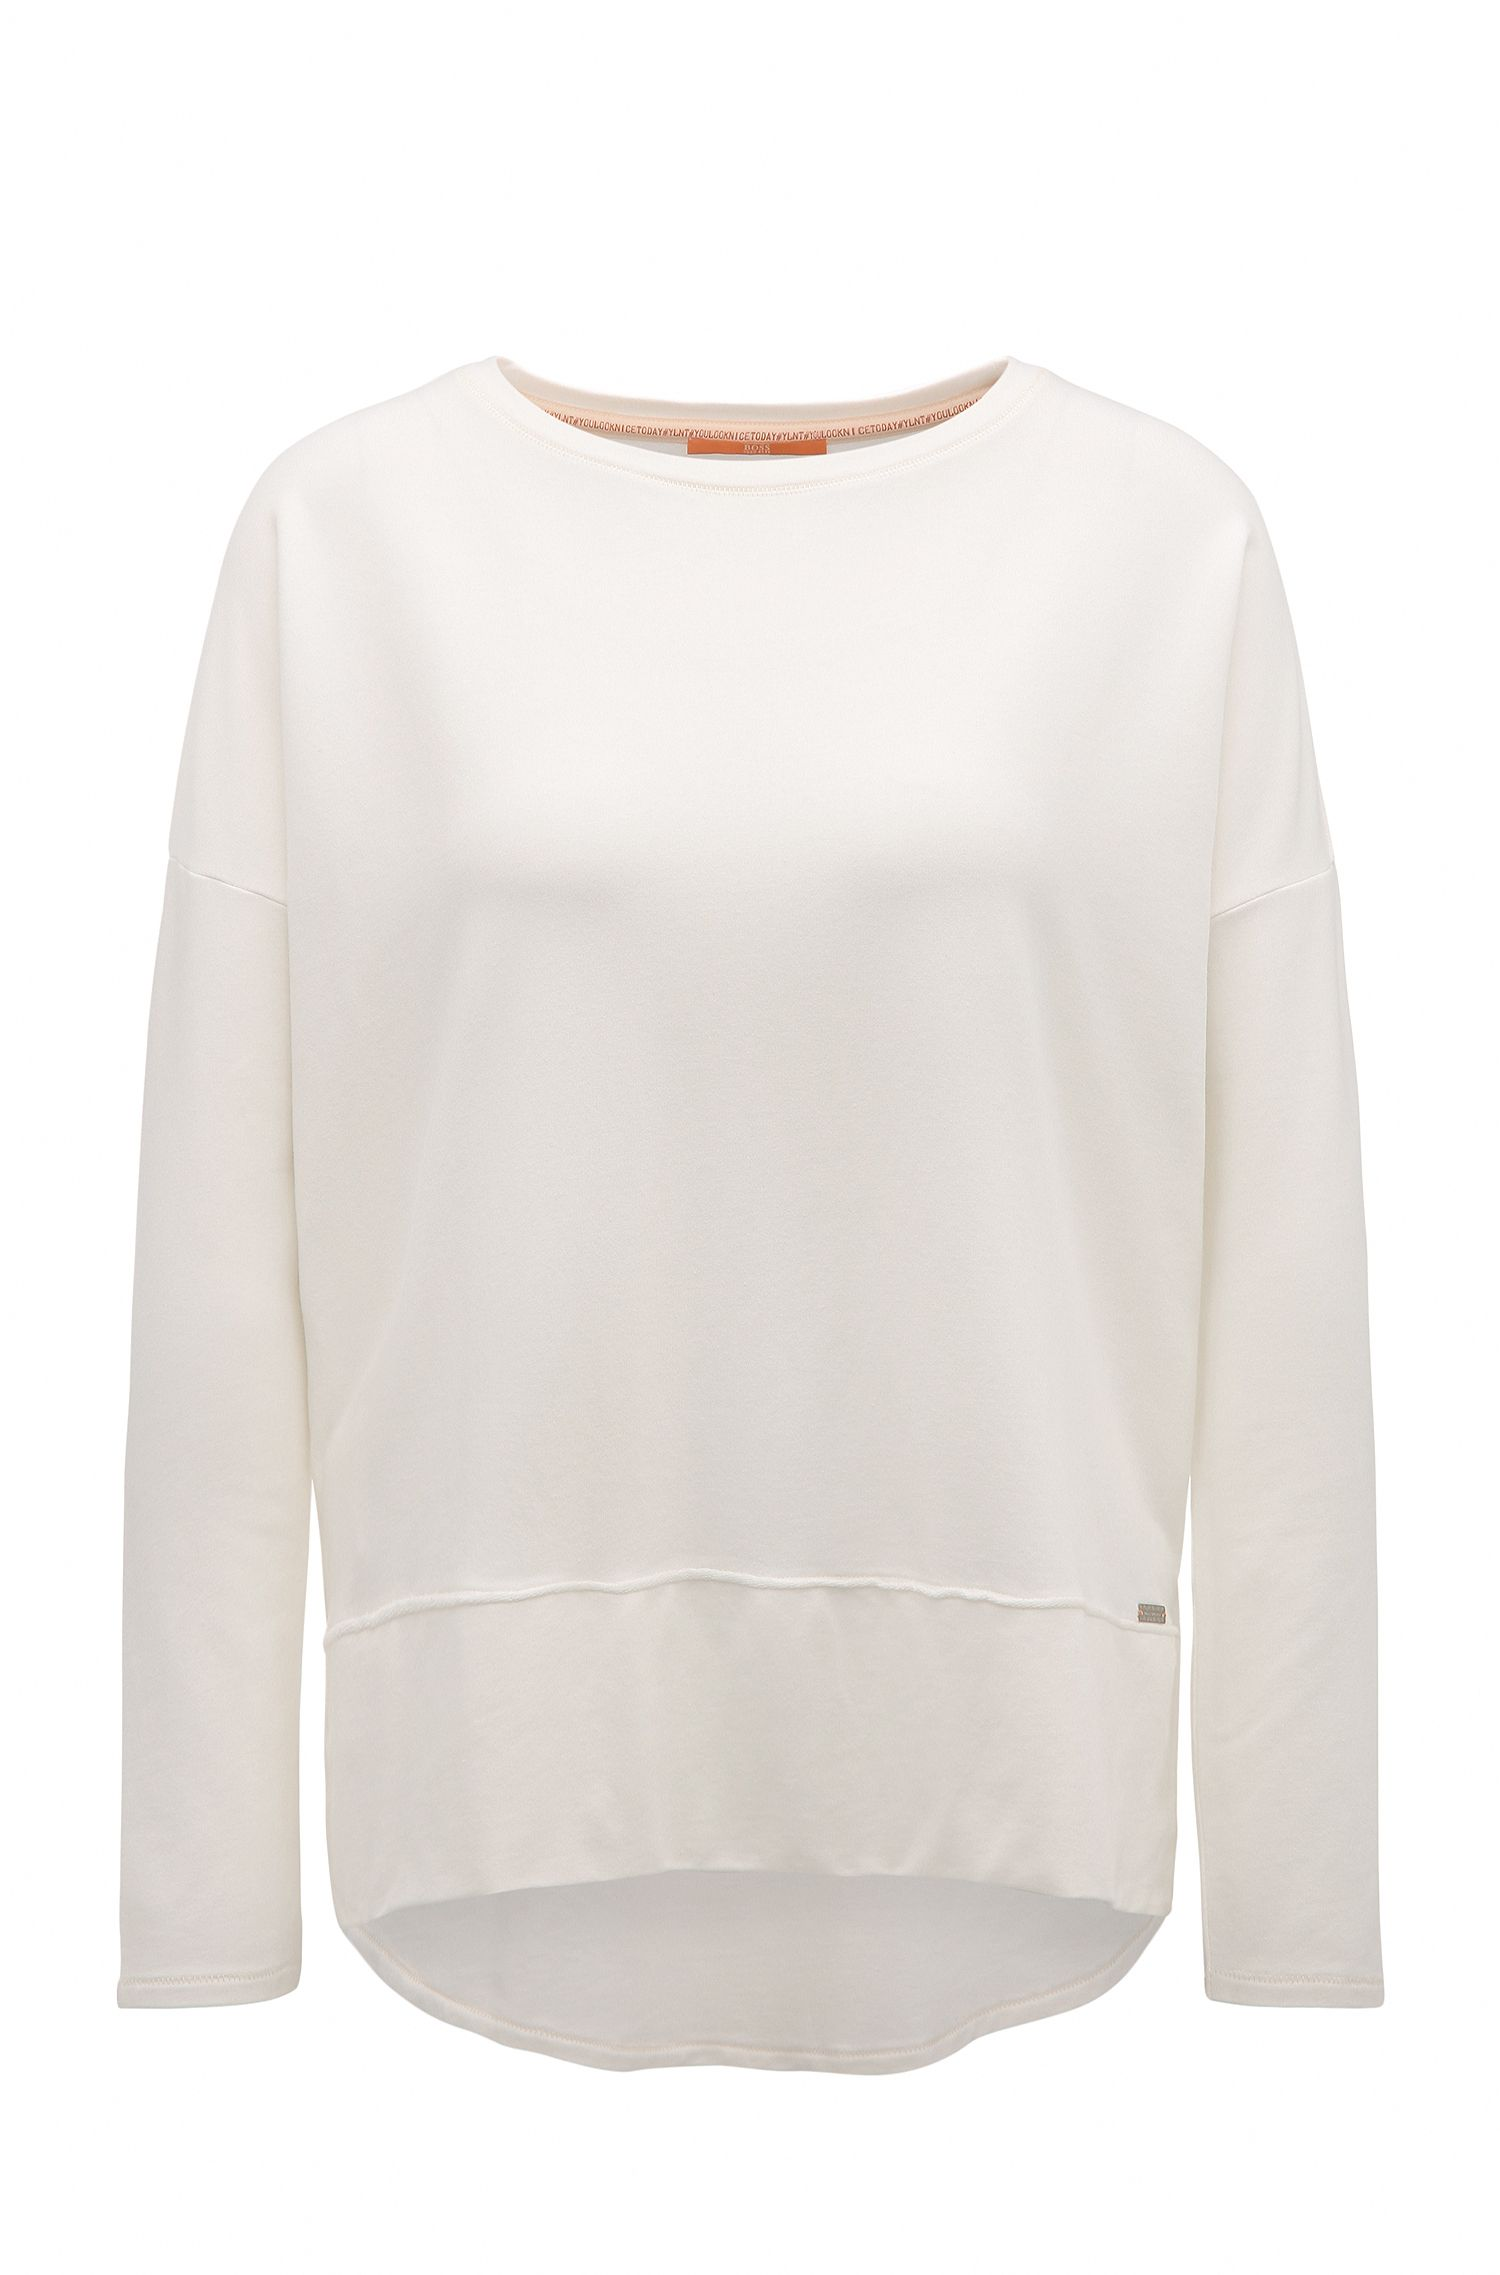 Relaxed-fit jersey sweater with raw-cut edges